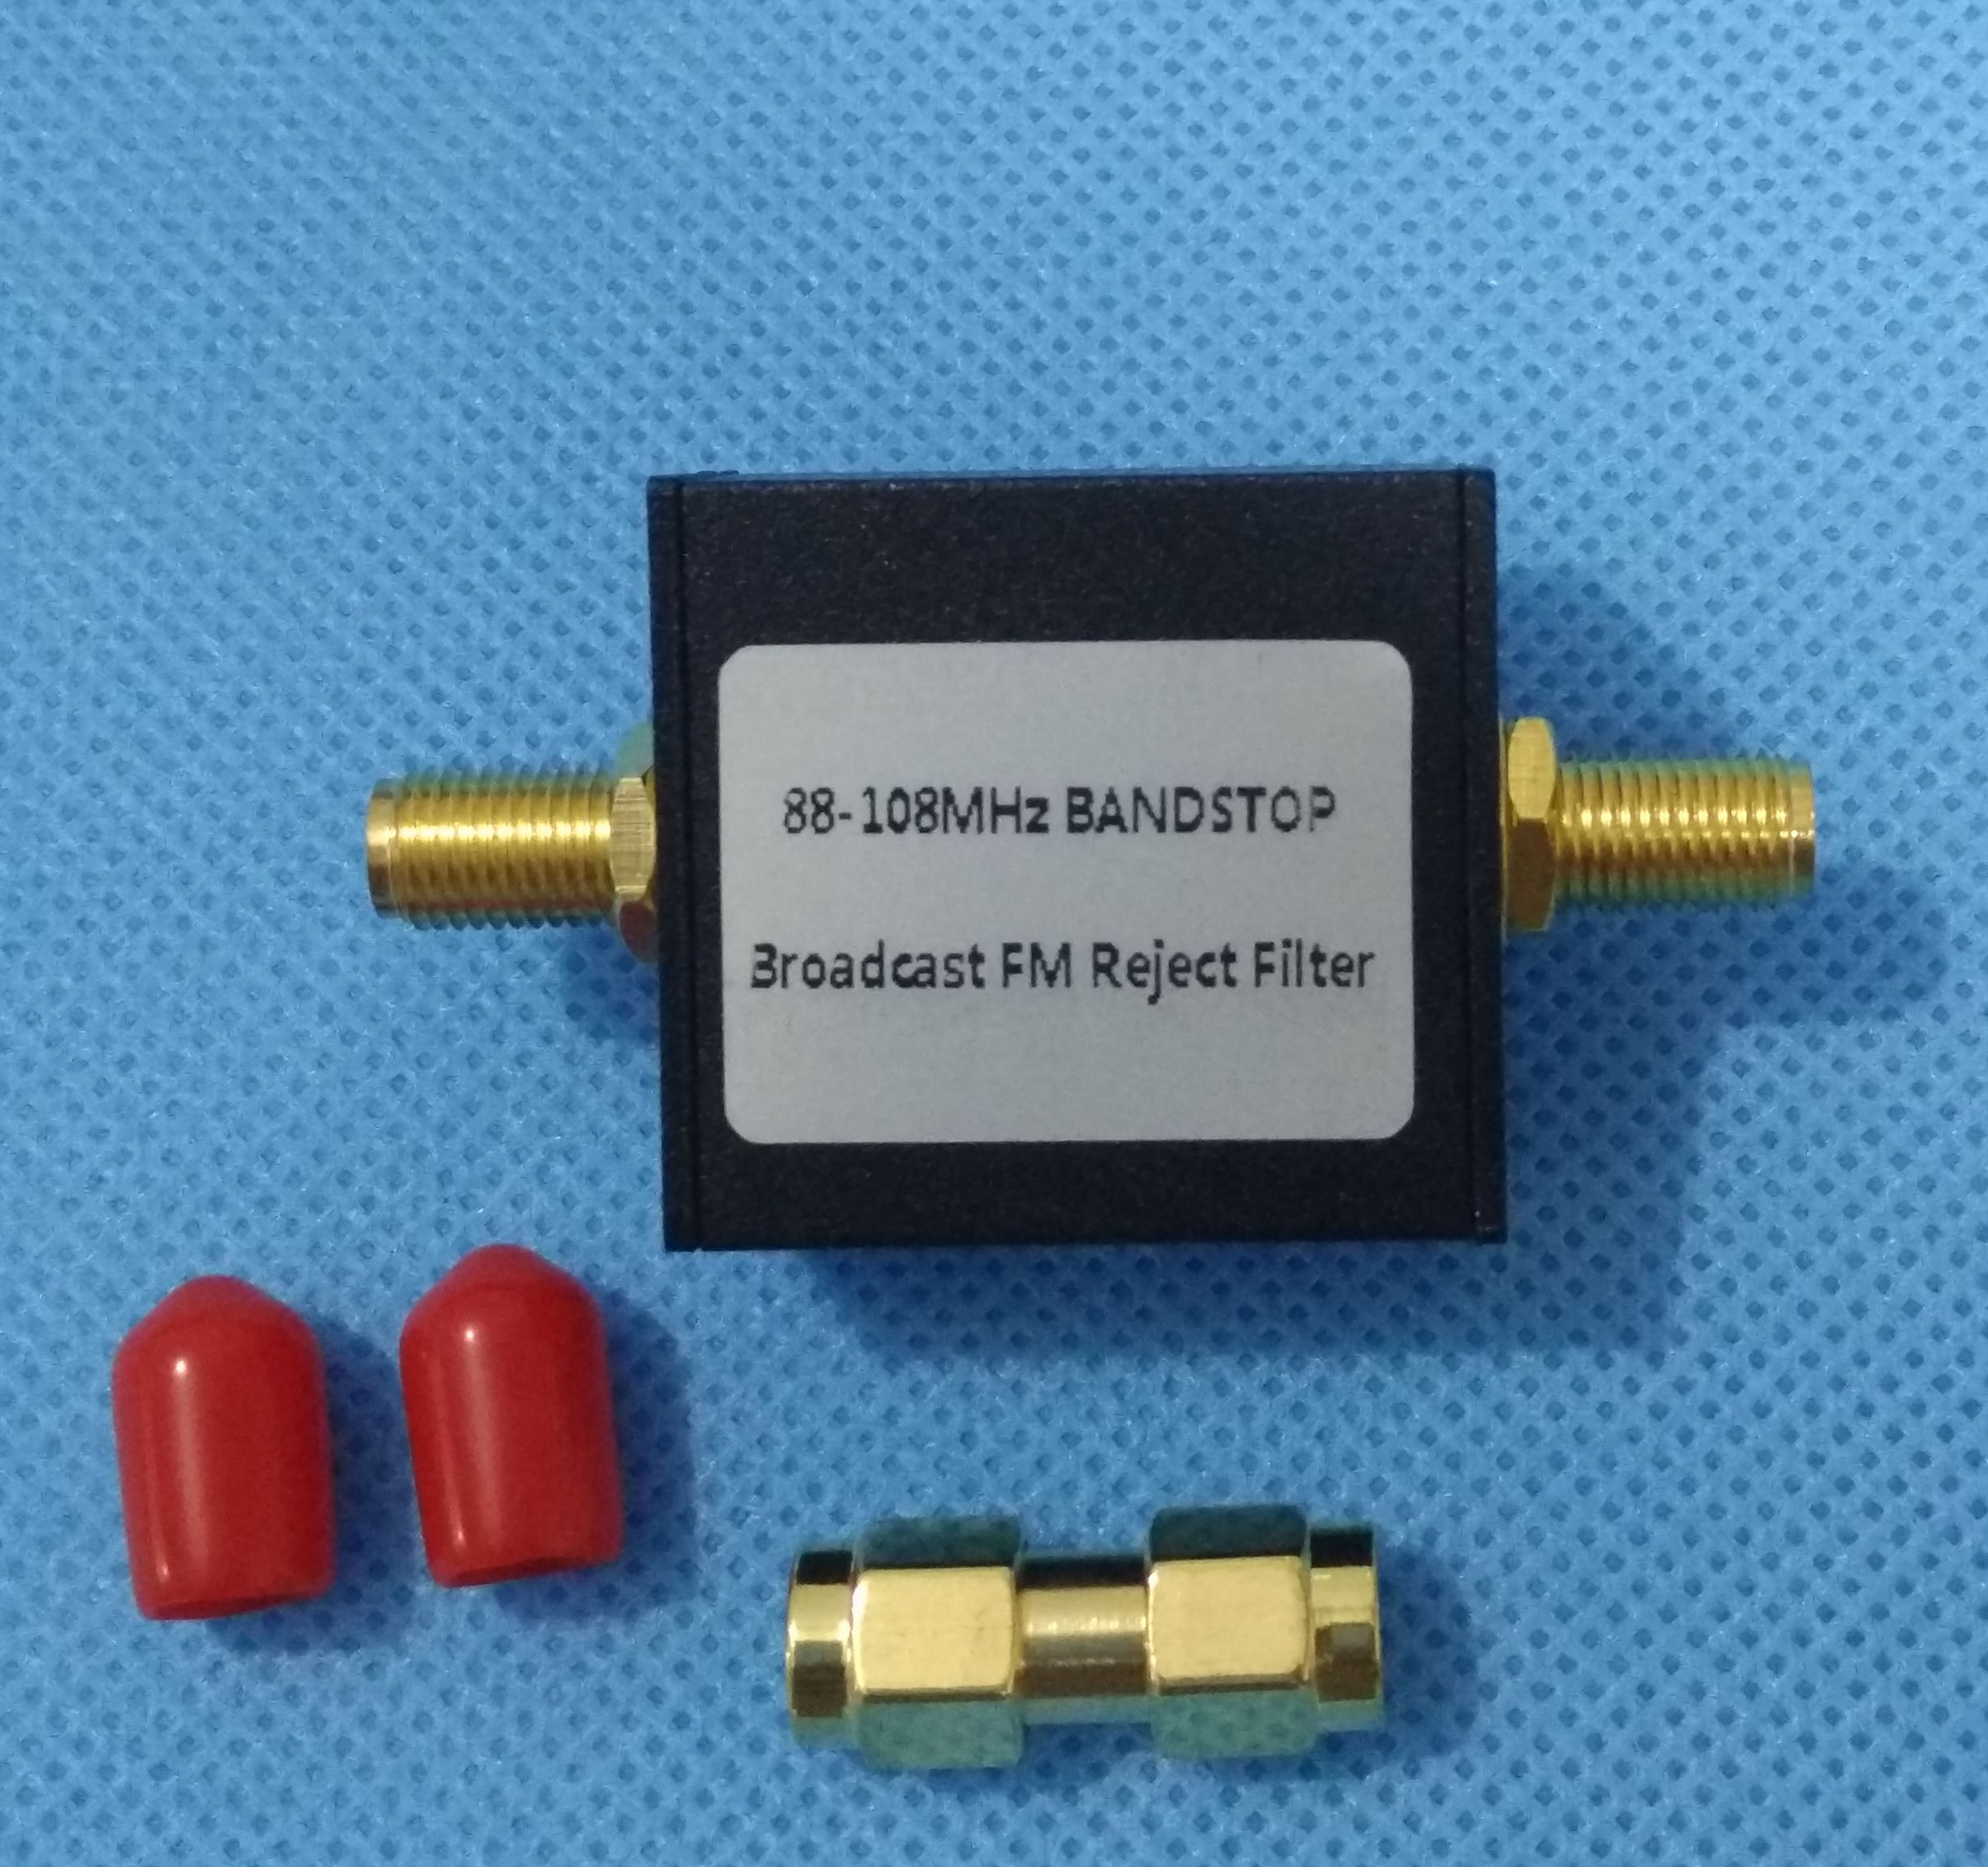 FM Band Stop Filter 88-108M